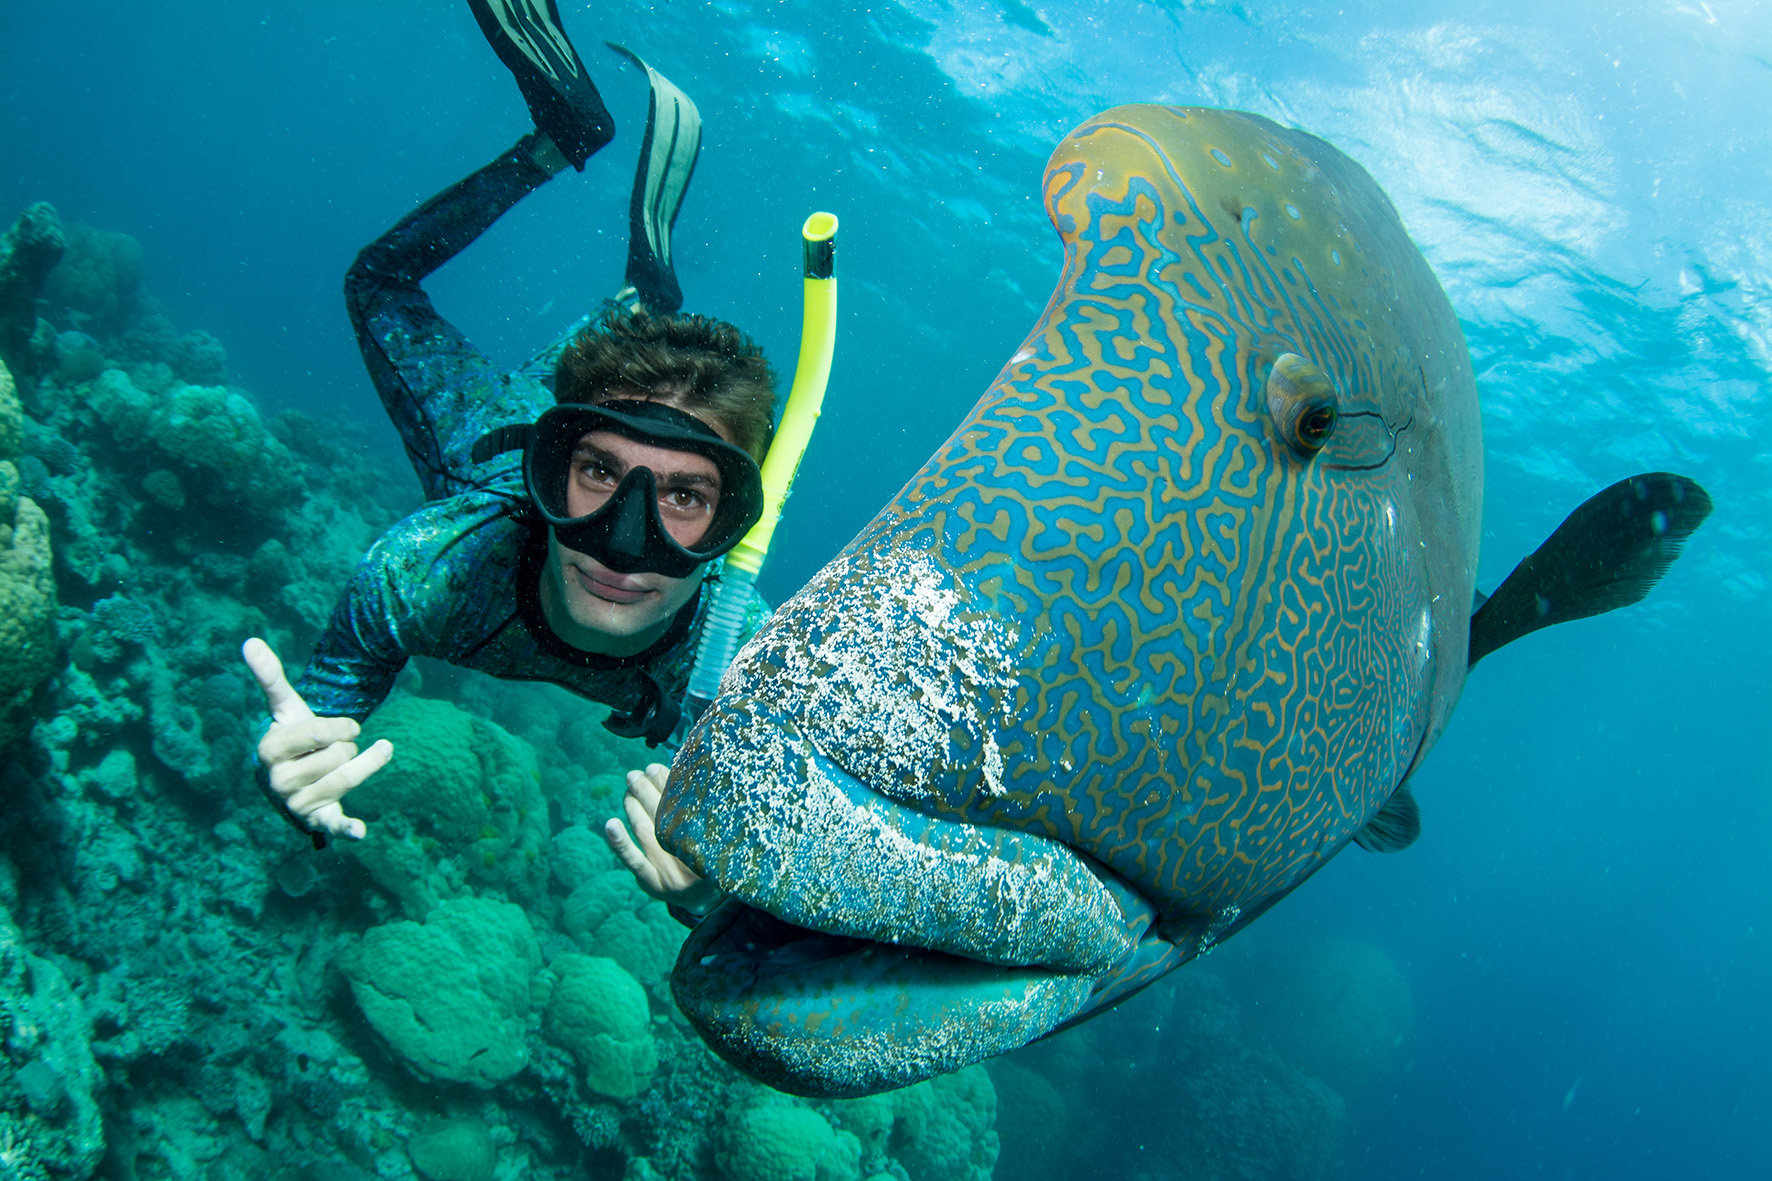 Wally is a Alpha-male Alphamale Humphead Napoleon Wrasse.   Most dive sites have one of this specimen and they are collectively called Wally.  They are very curious and often interact with divers.